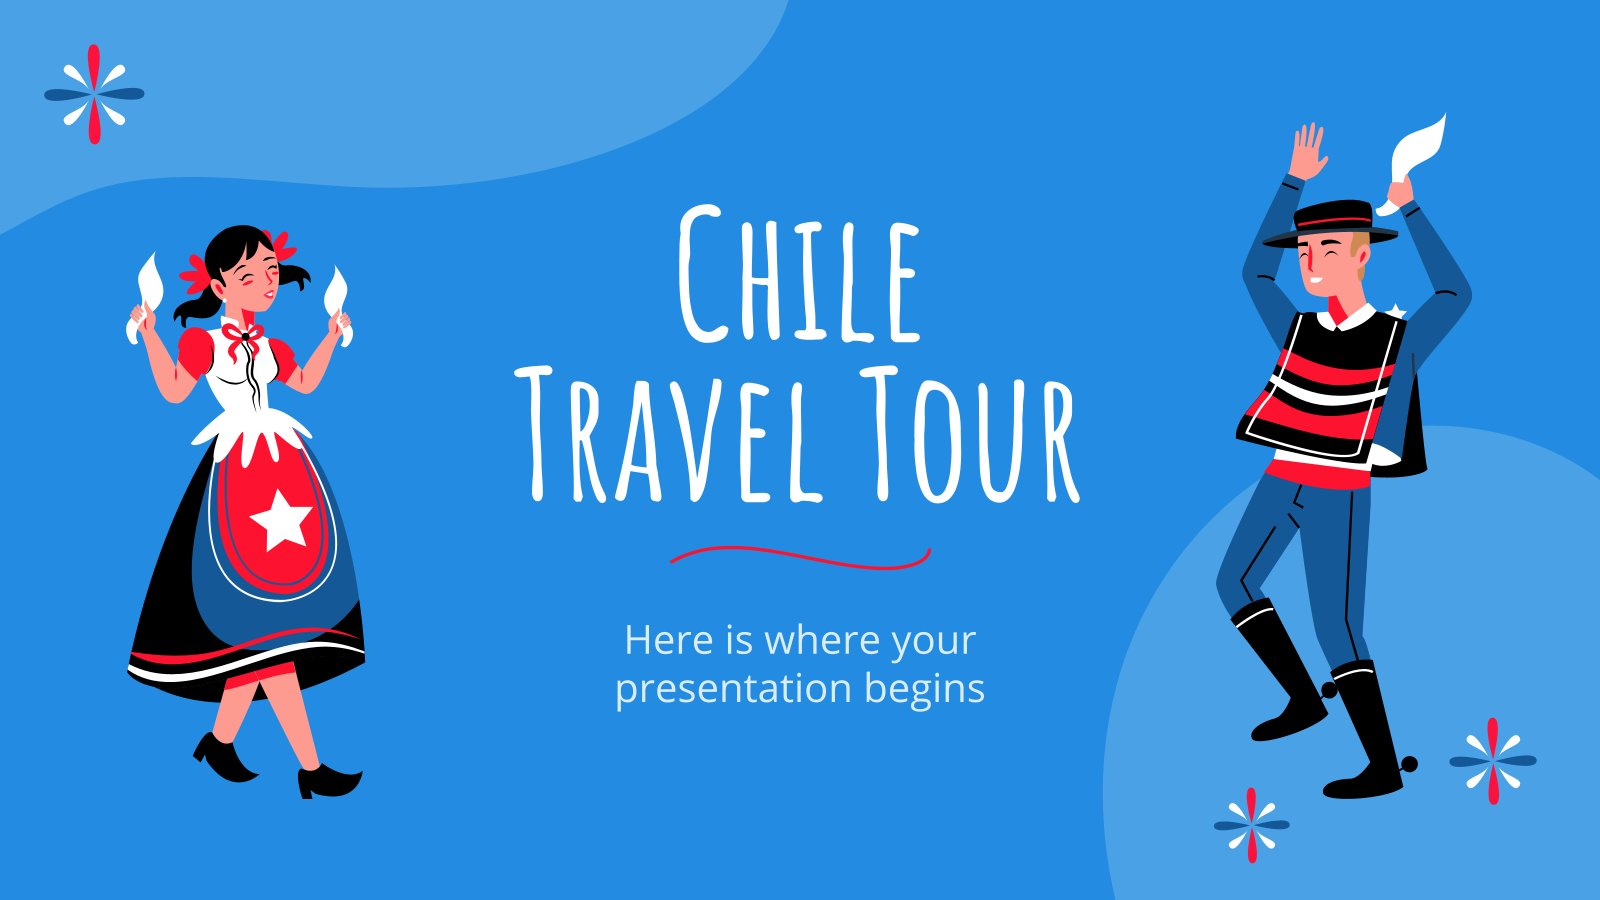 Chile Travel Tour presentation template